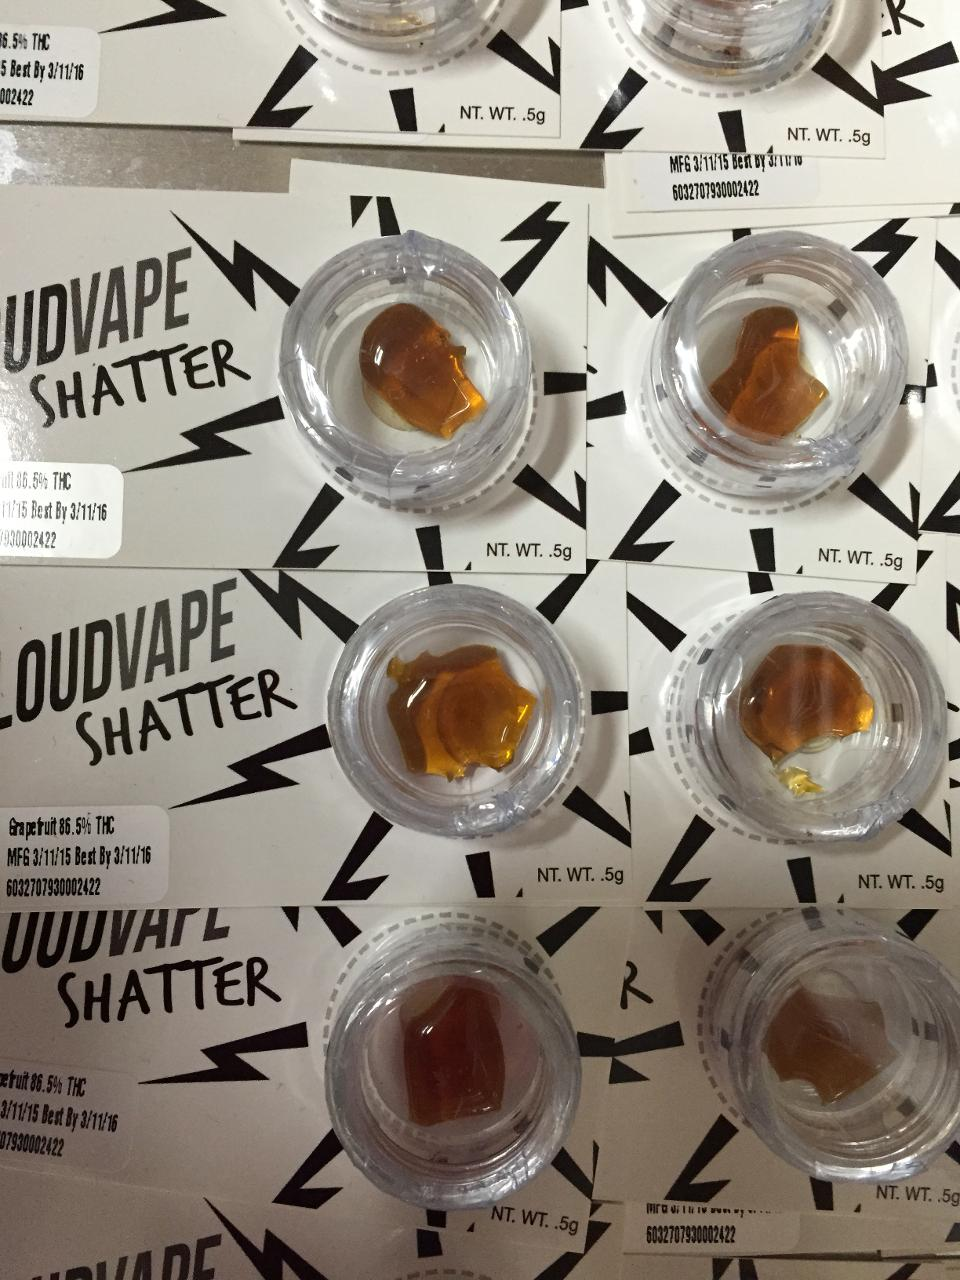 Shatter made by Evergreen Herbal in Seattle